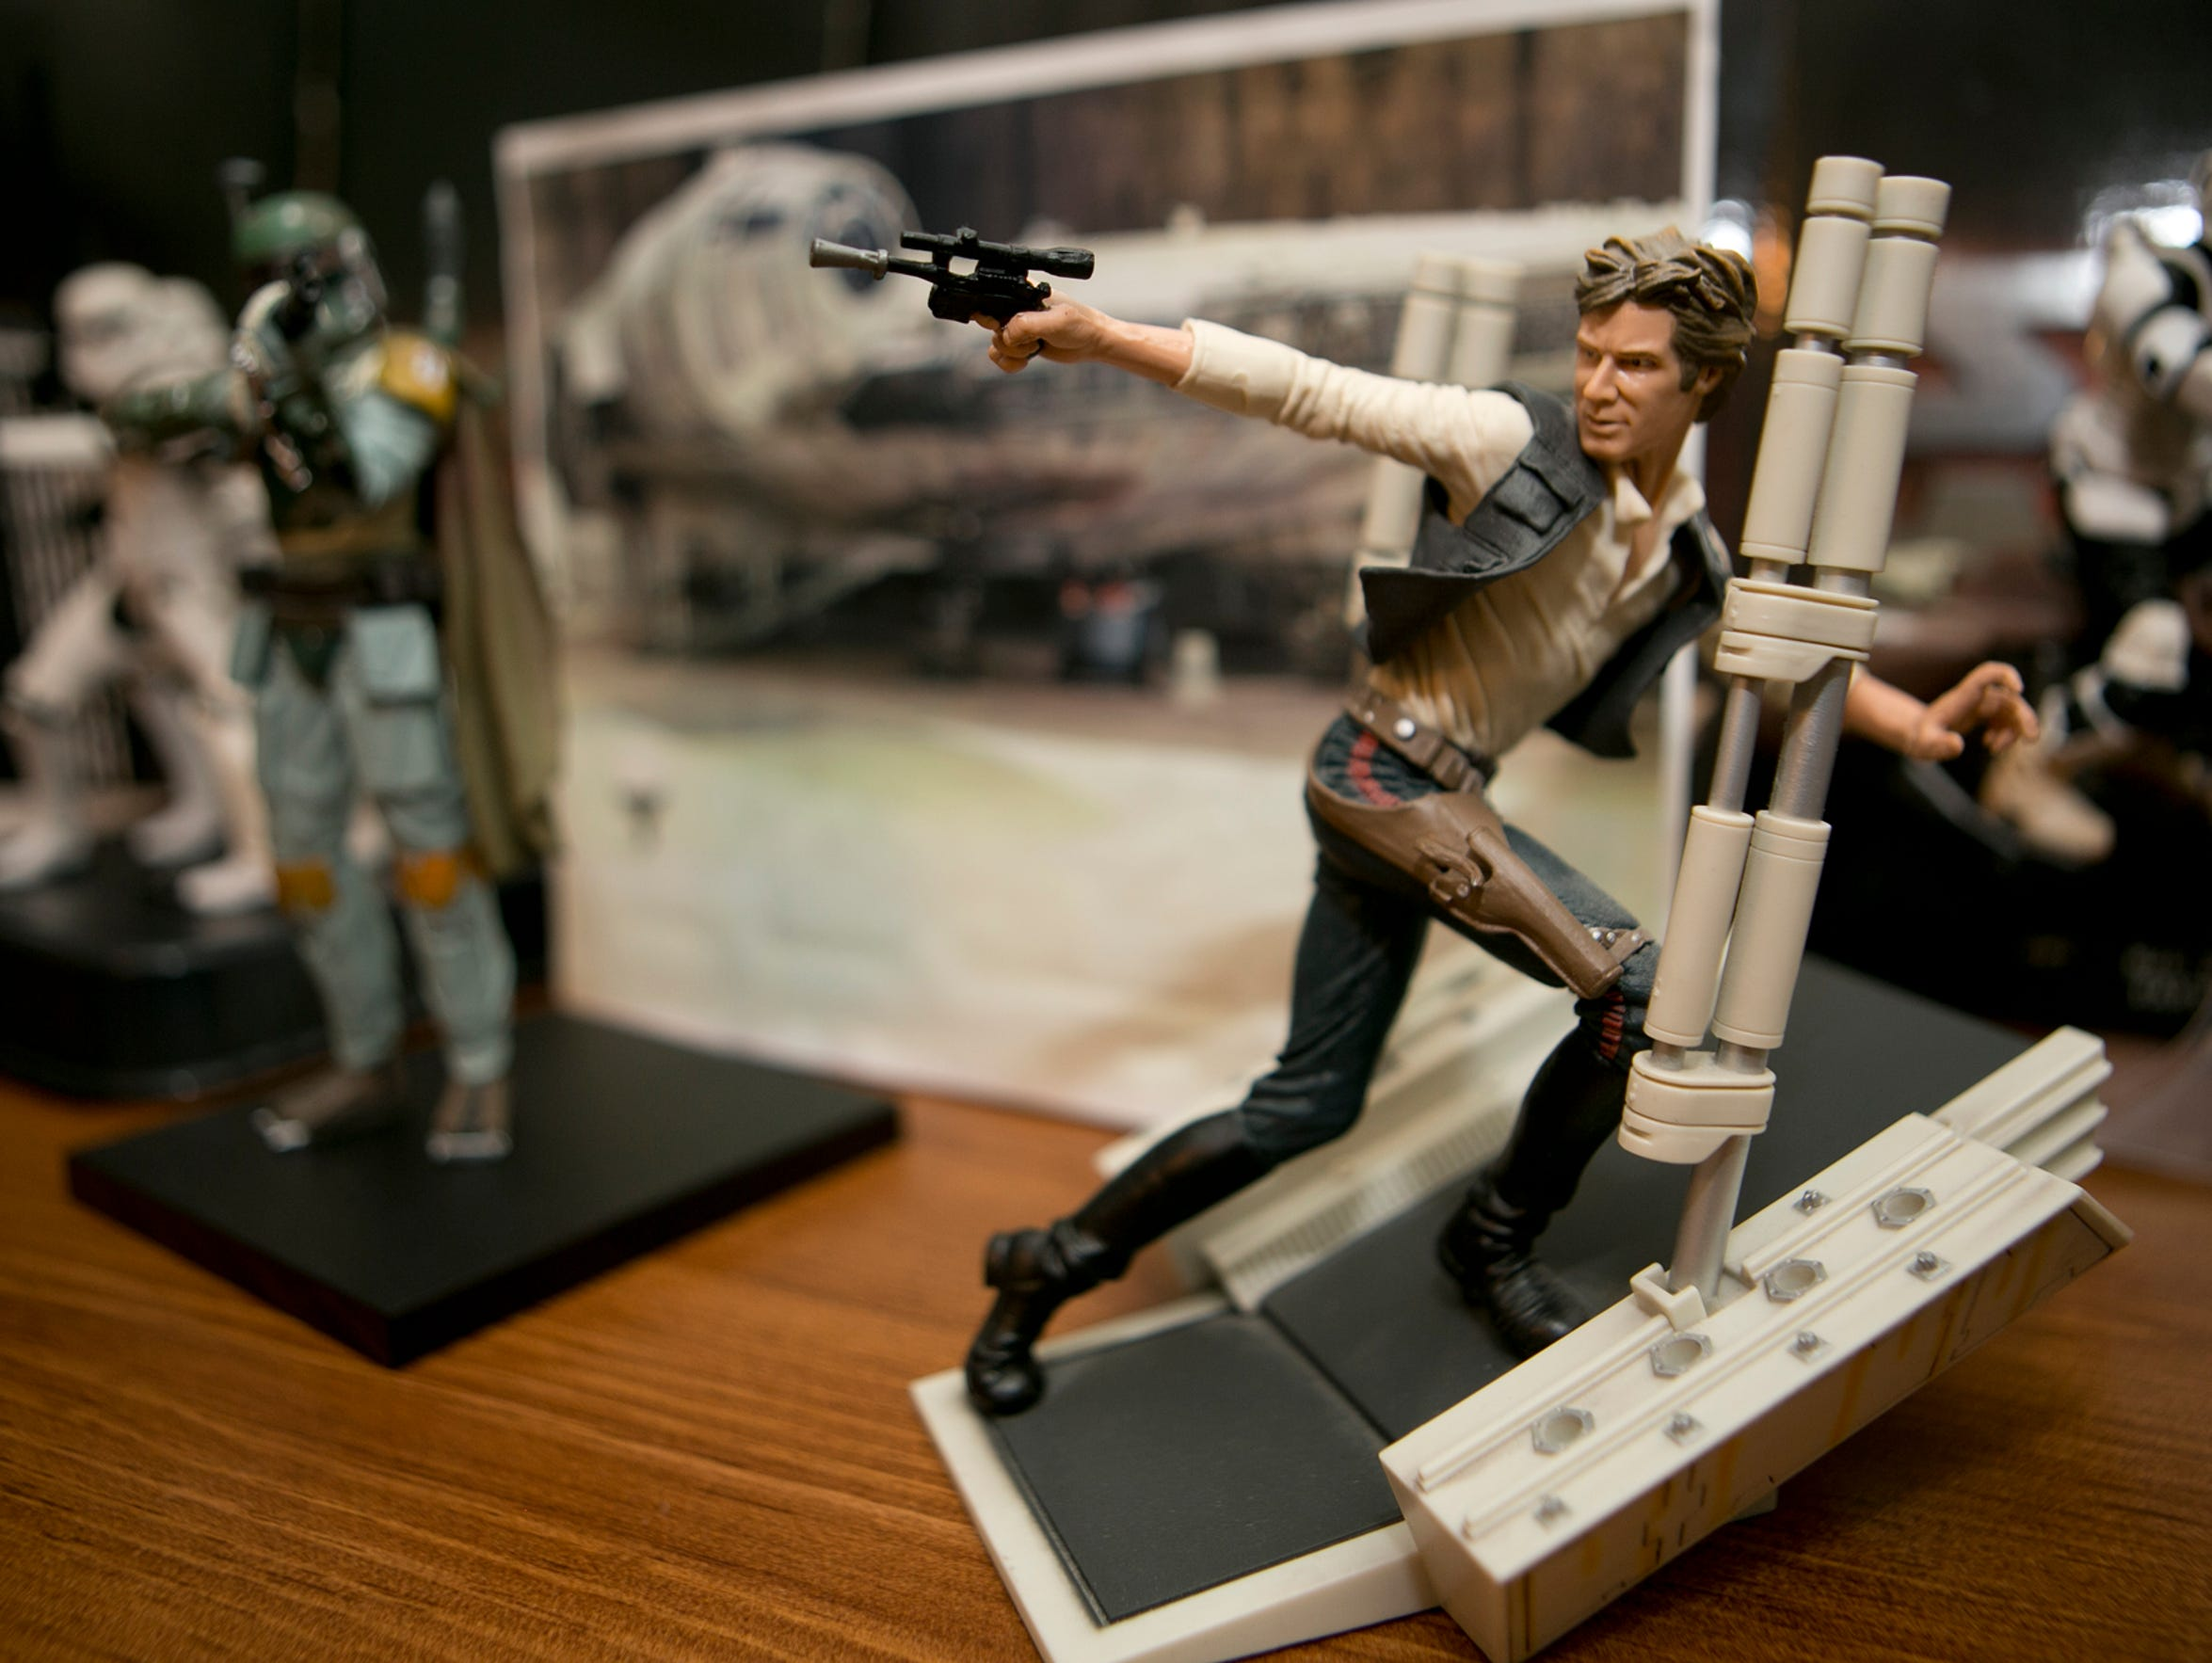 A Han Solo figurine at Frank Wileman's home in Custer,